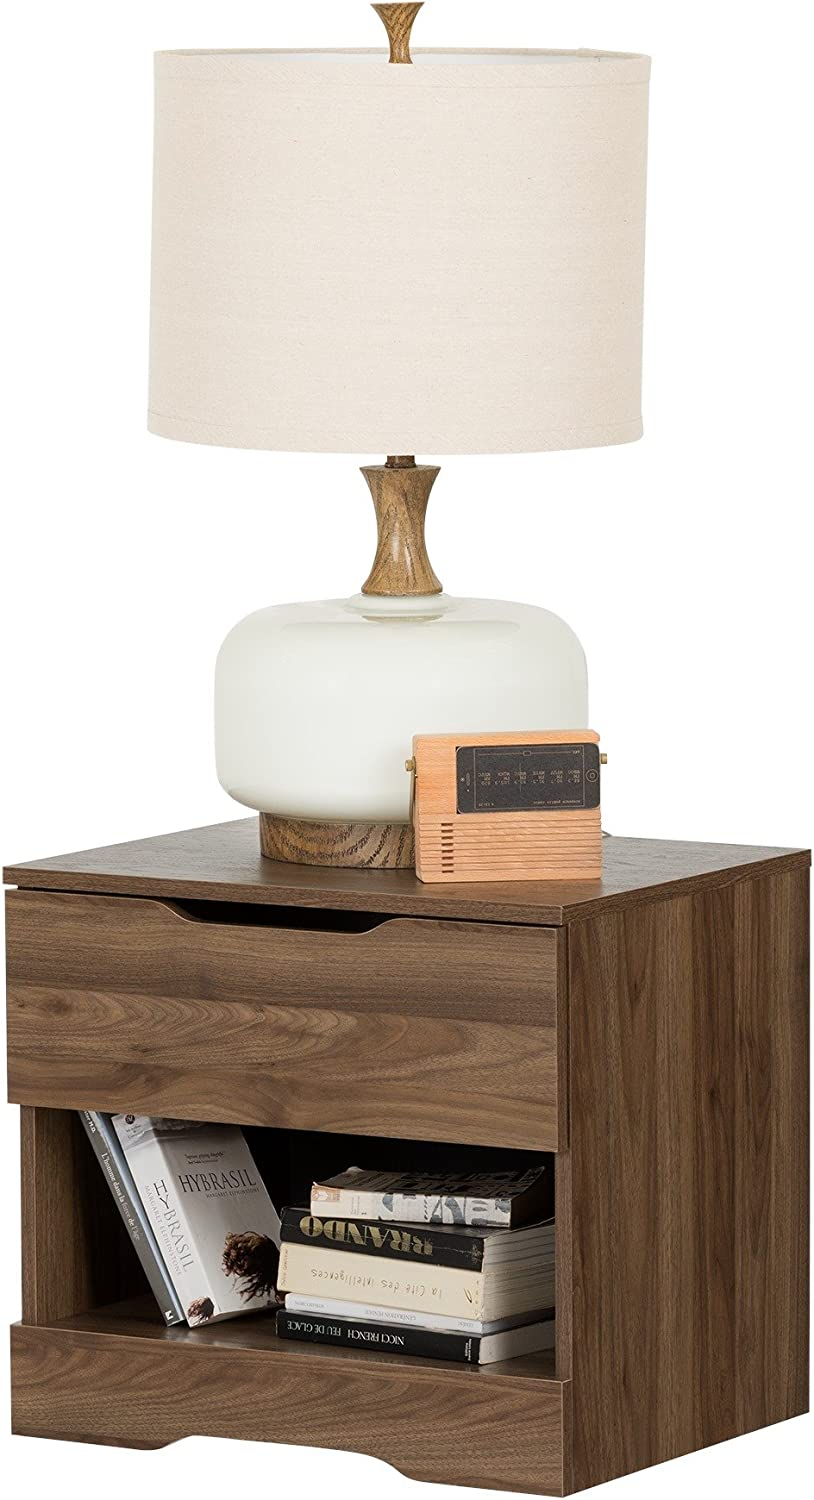 Gray Oak 21.06L x 16.48D x 23.23H South Shore Furniture 10397 Holland 1-Drawer Nightstand